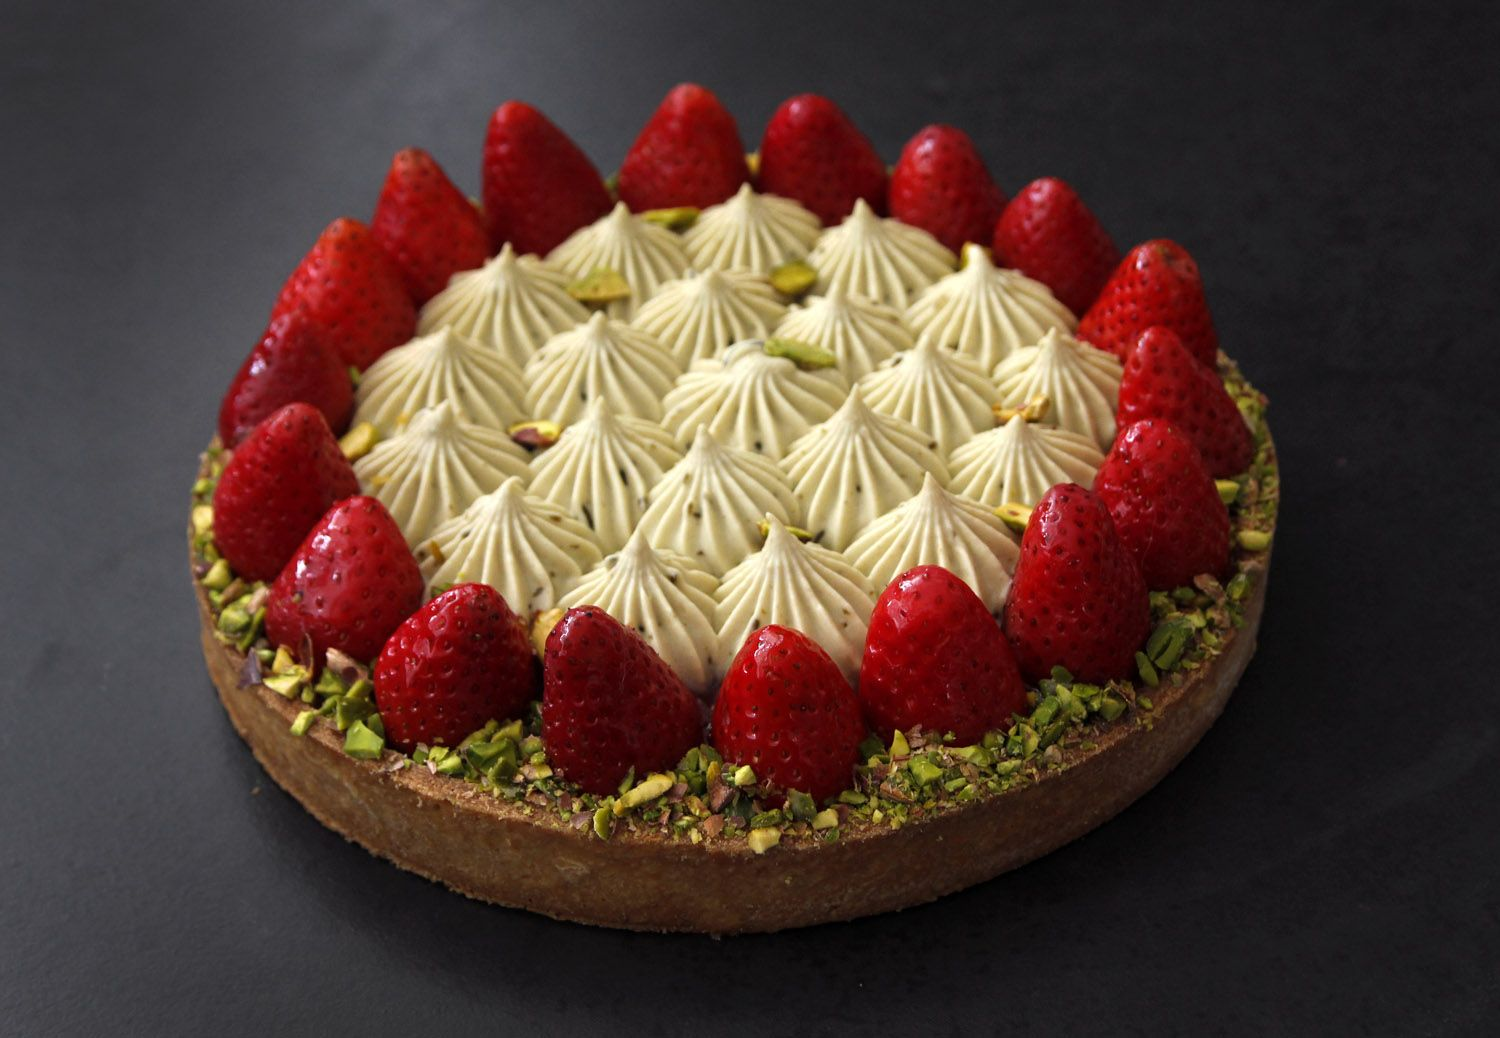 Strawberry and Pistachio Pie